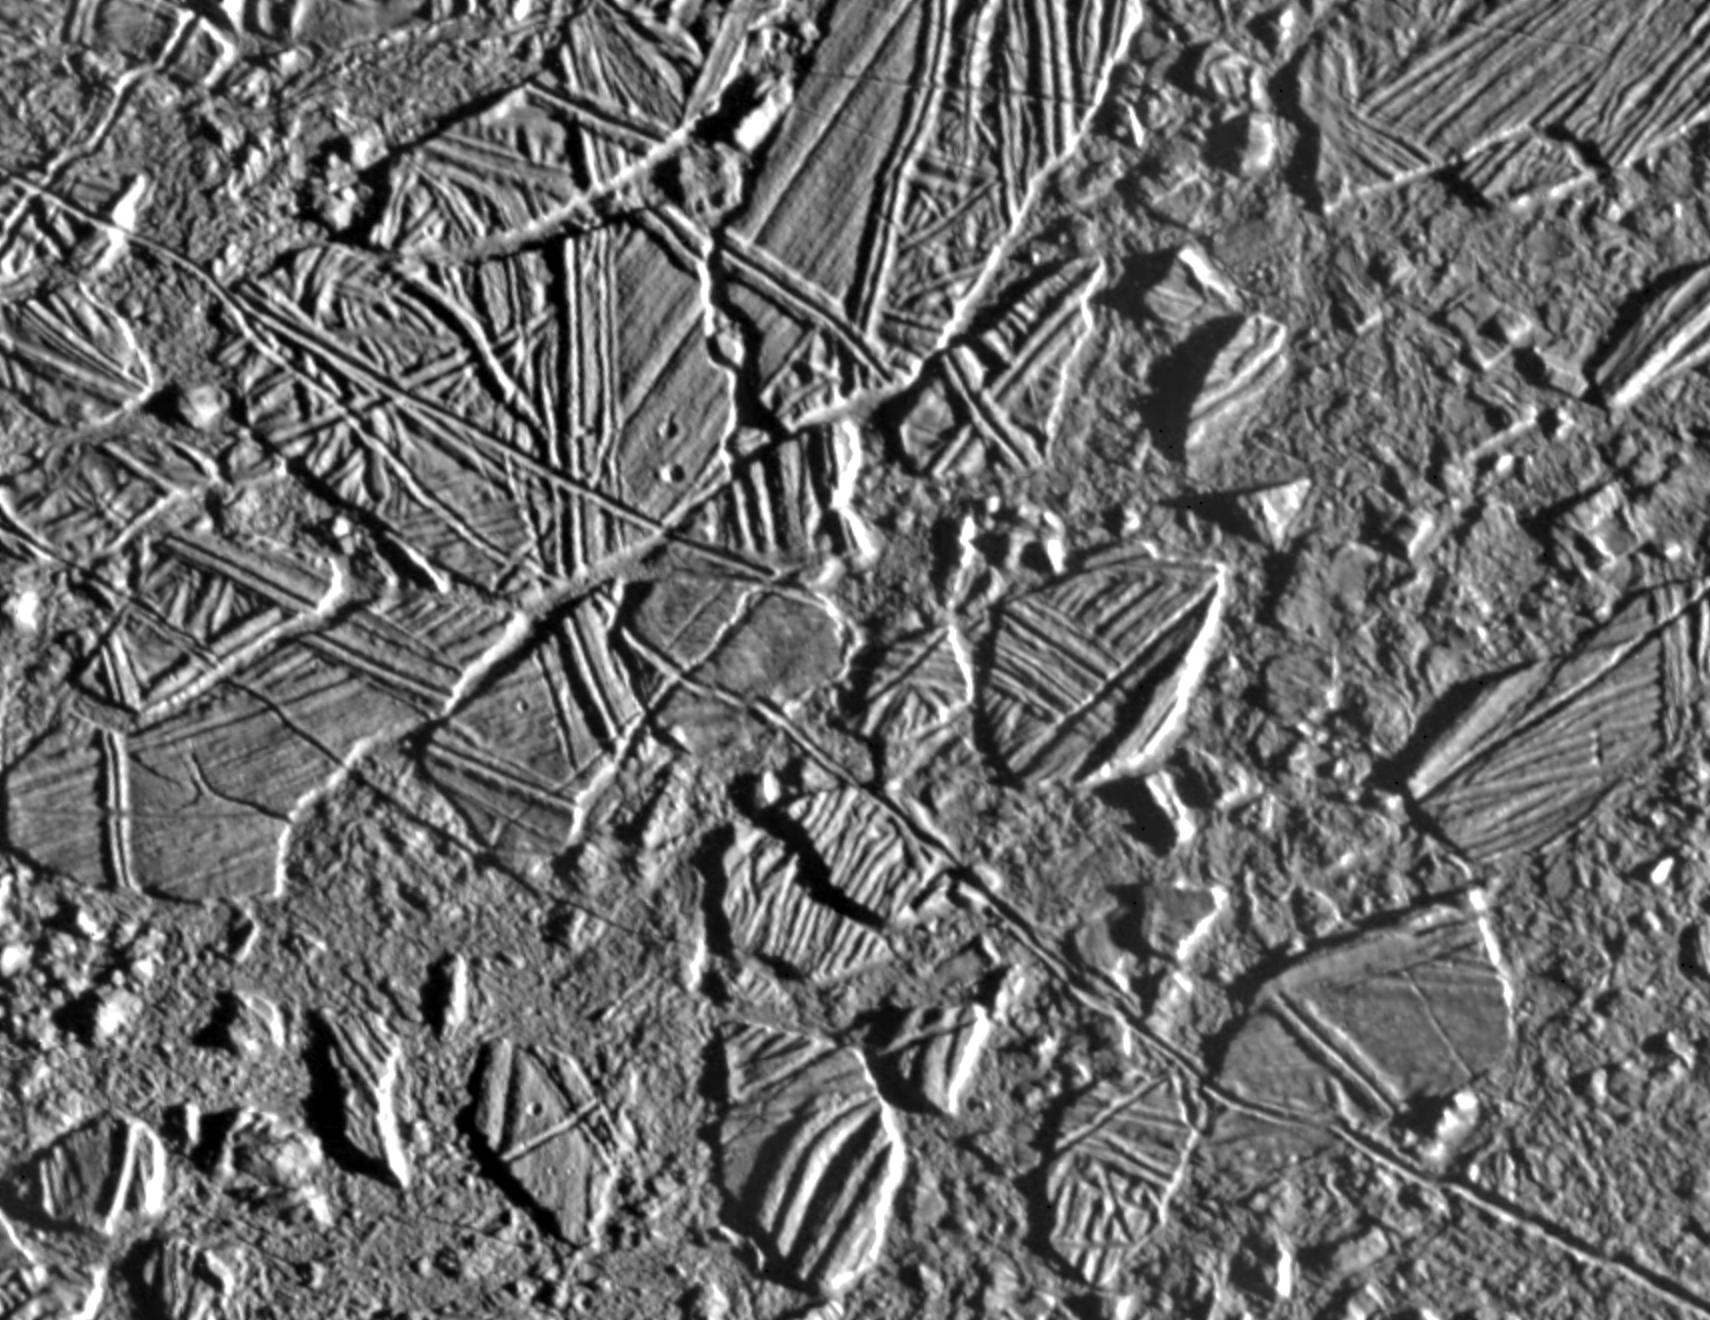 black and white view of rough terrain on an icy surface